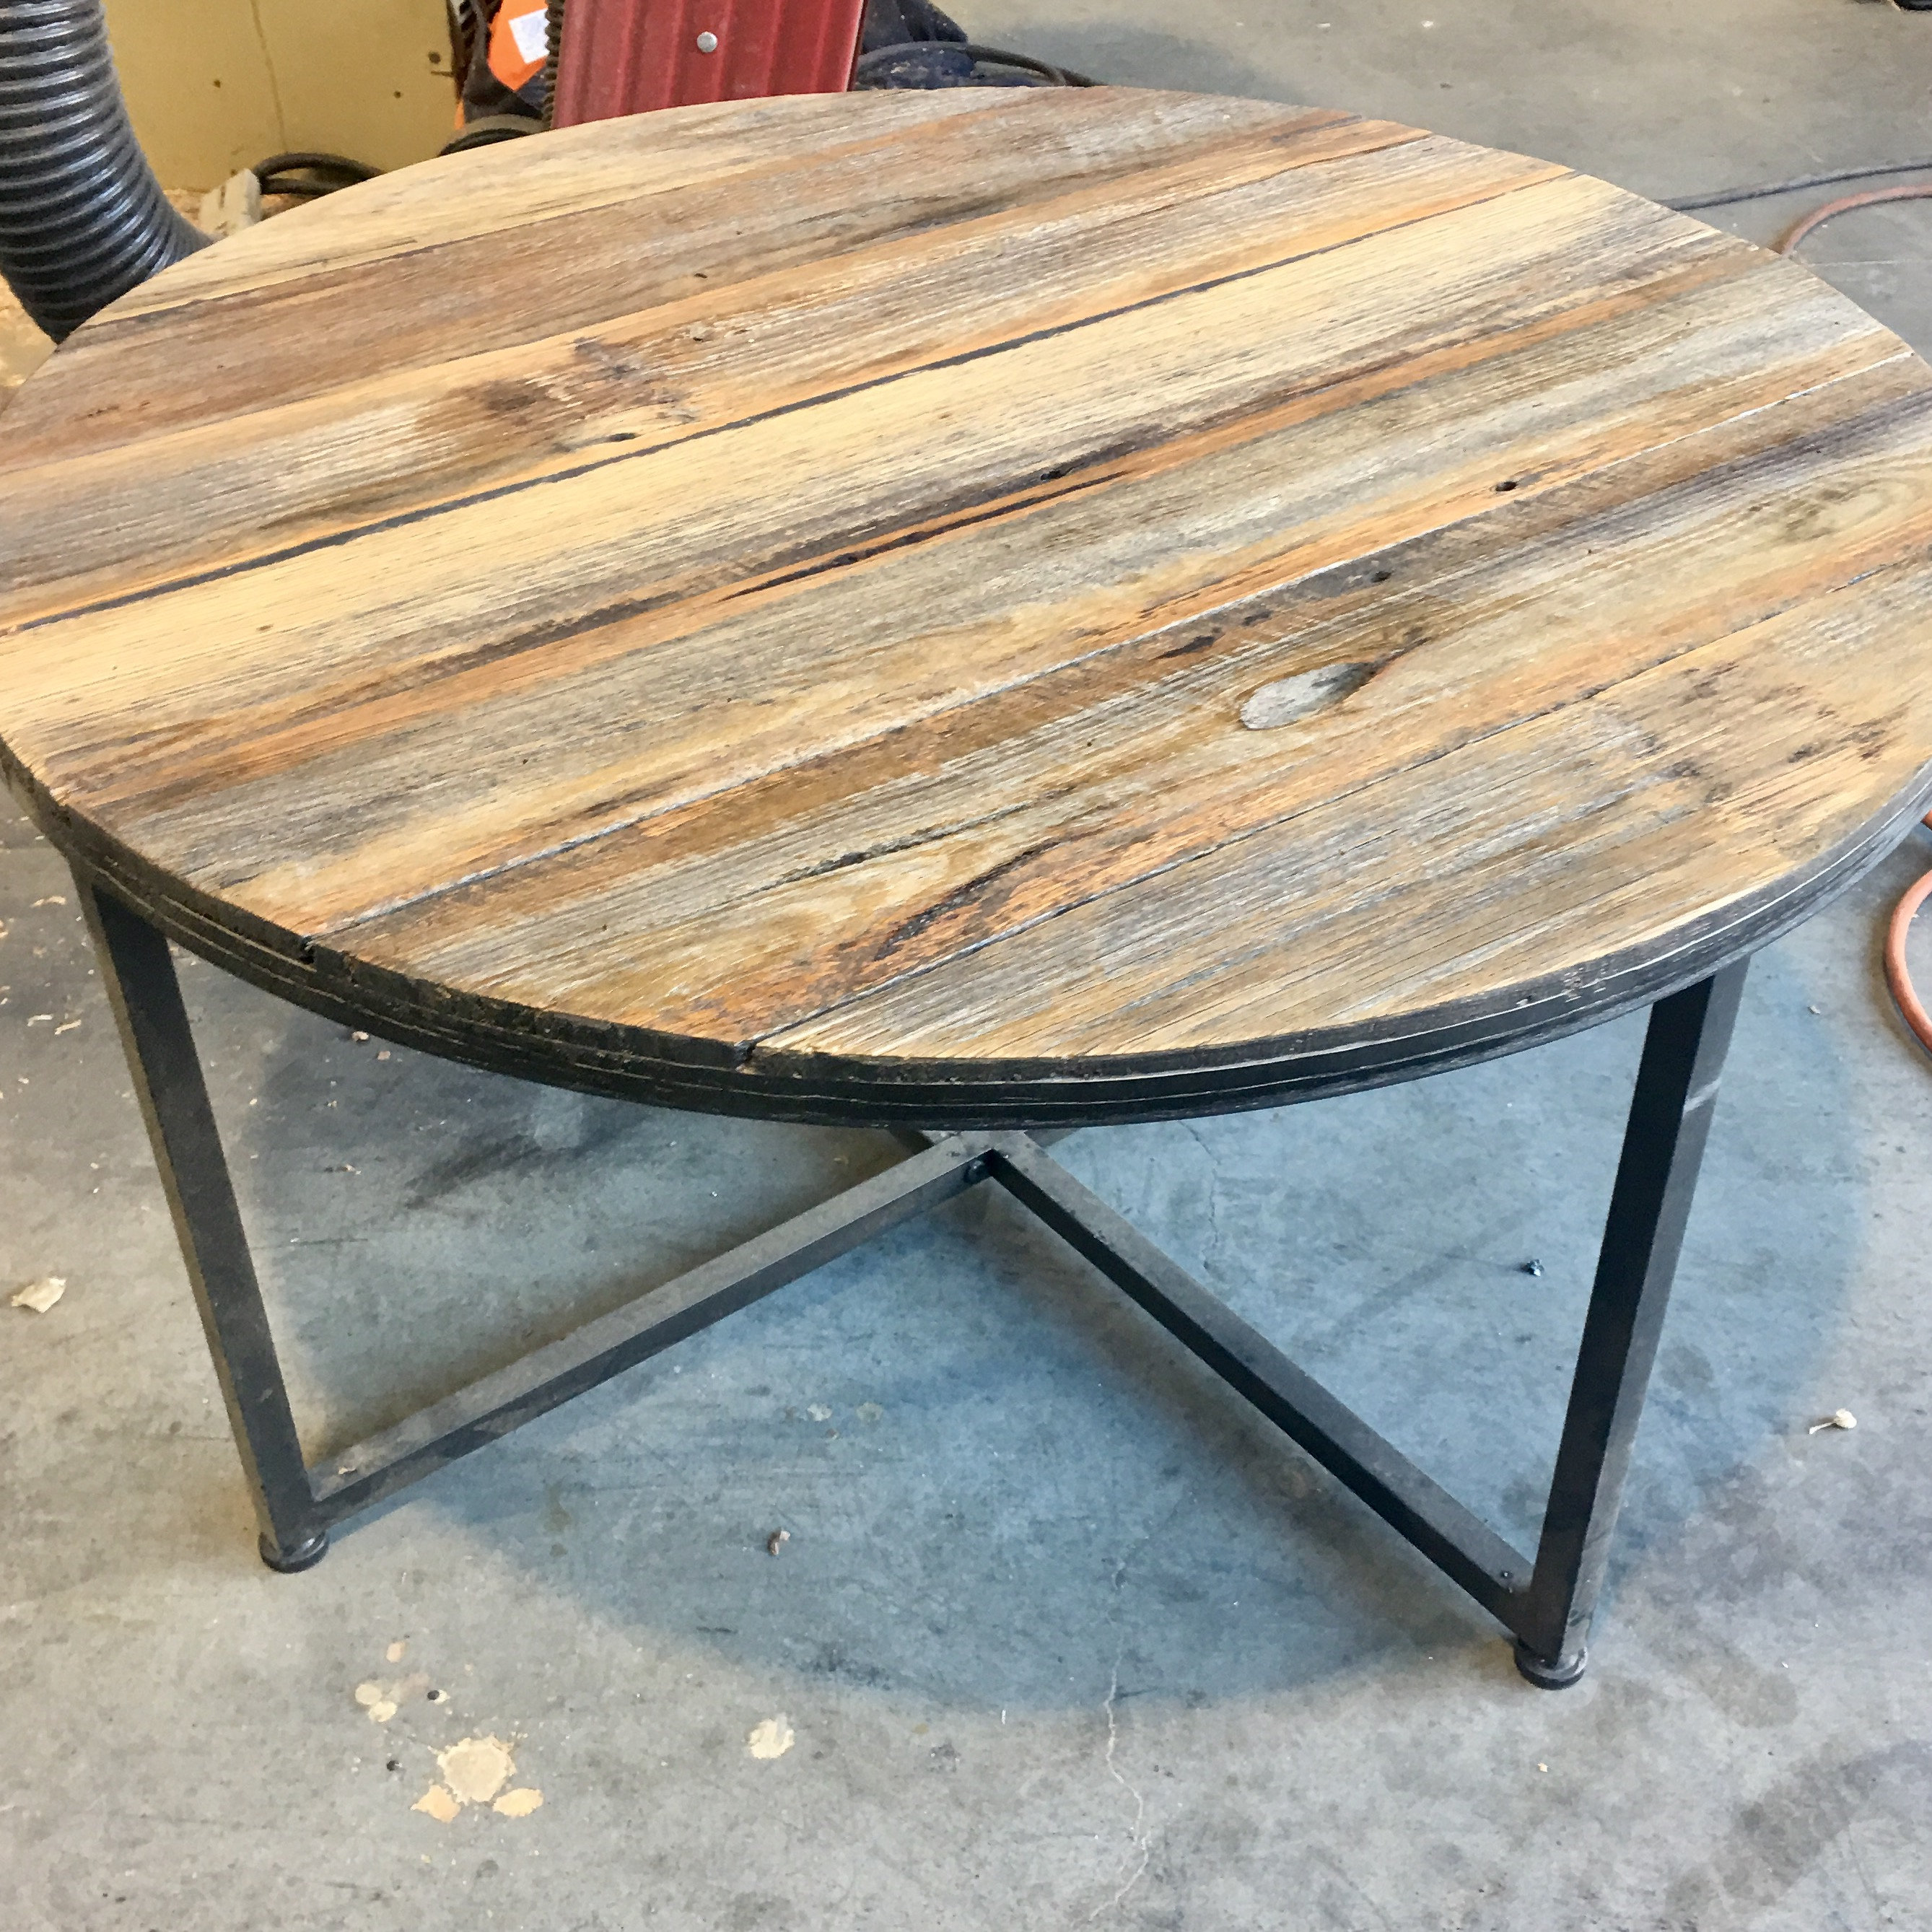 Recycled Timber & Industrial Furniture